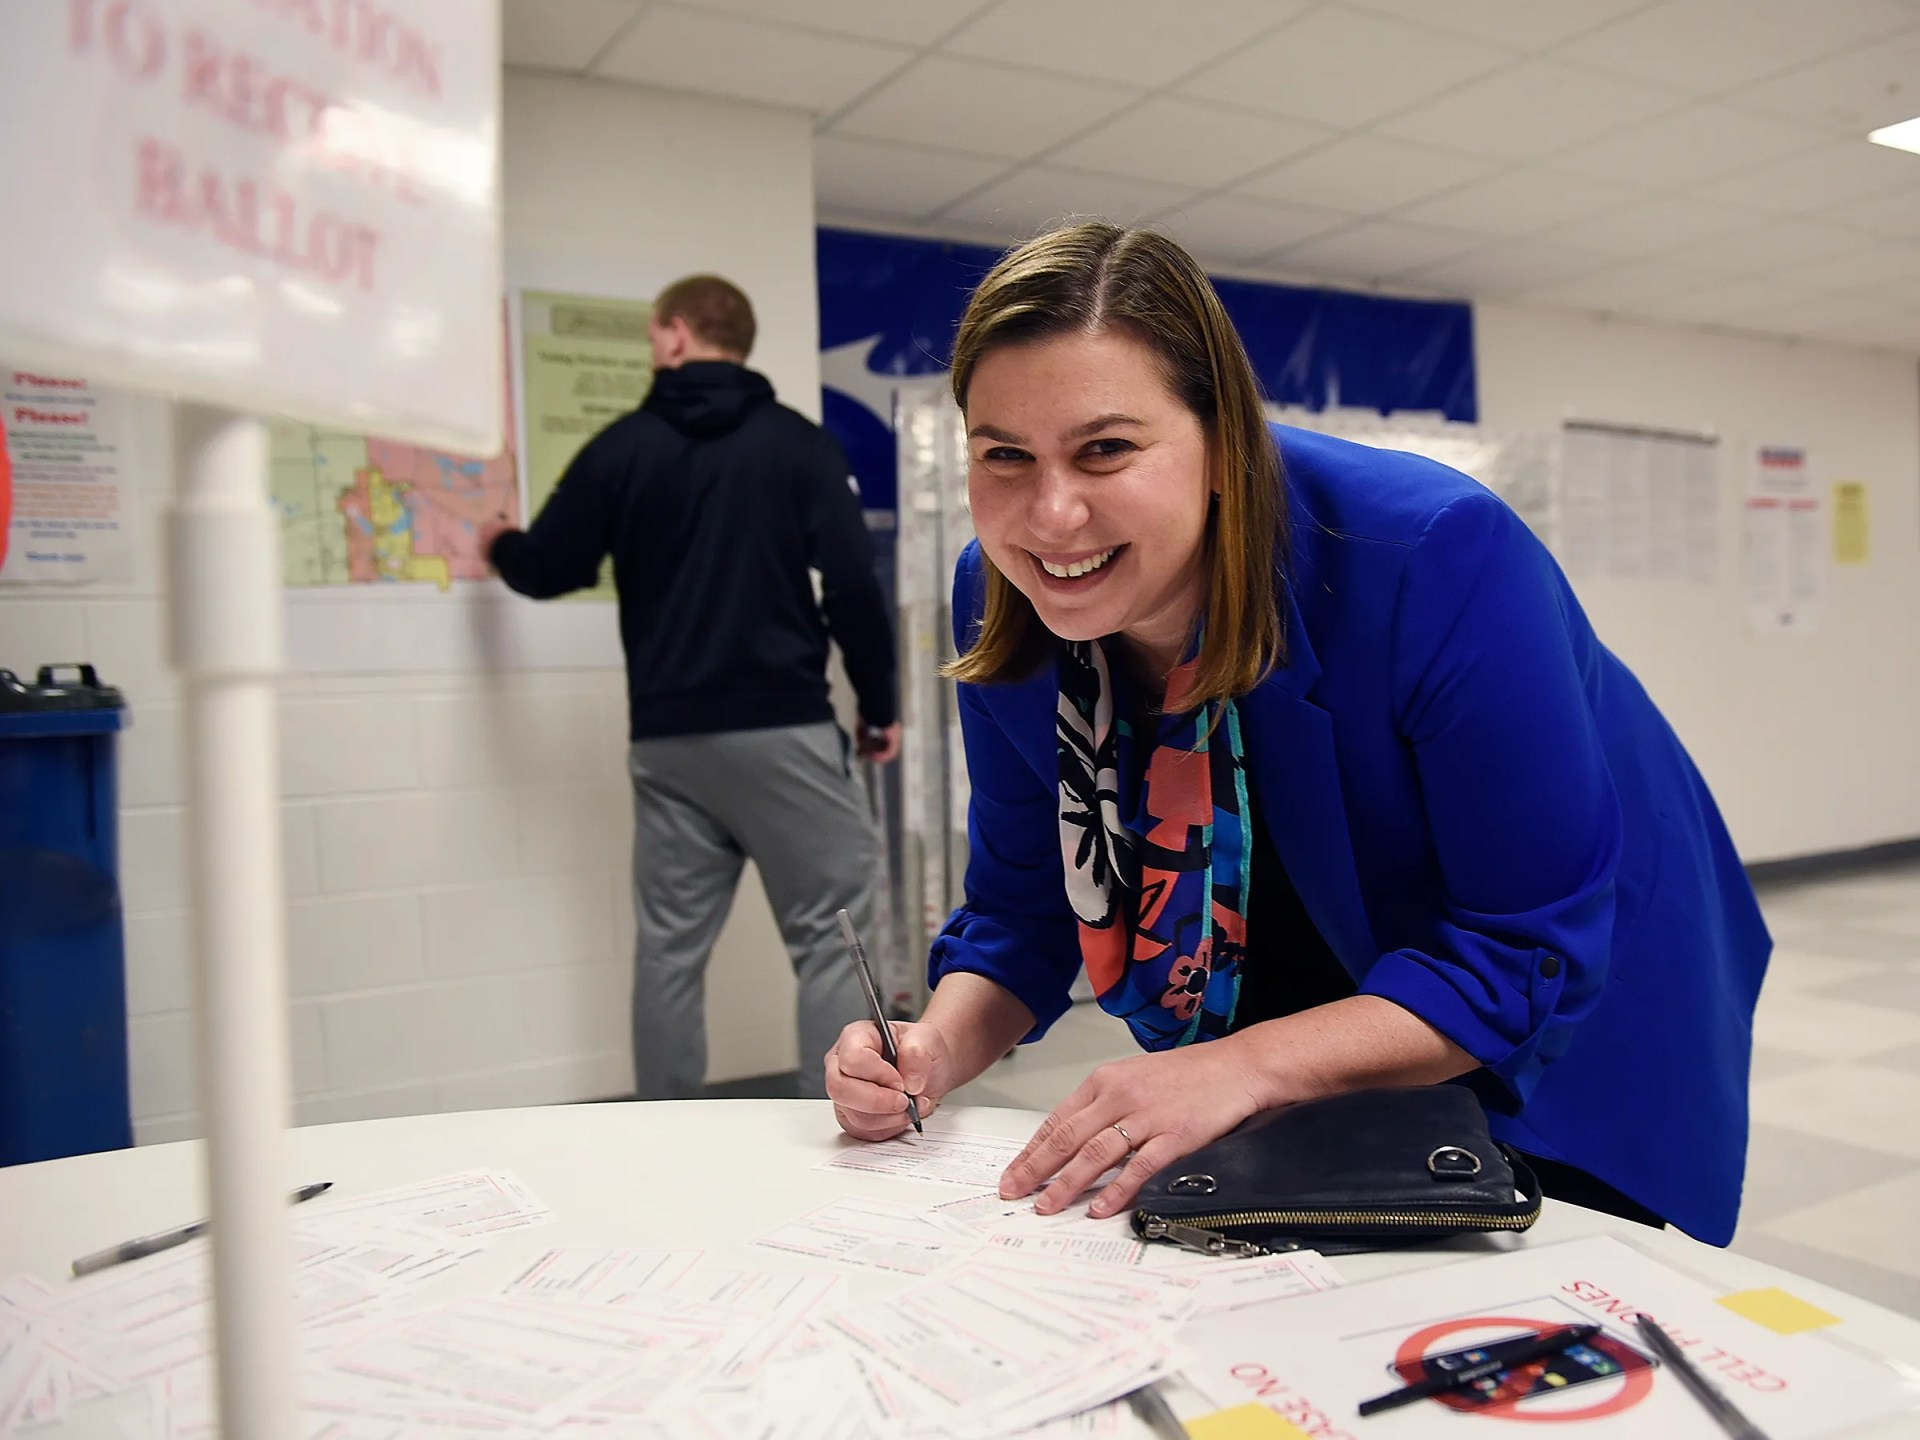 Elissa Slotkin, Democratic candidate for the U.S. House of Representatives, fills out her voting card before casting her ballot at the Karl Richter Community Center in Holly on Nov. 6, 2018.